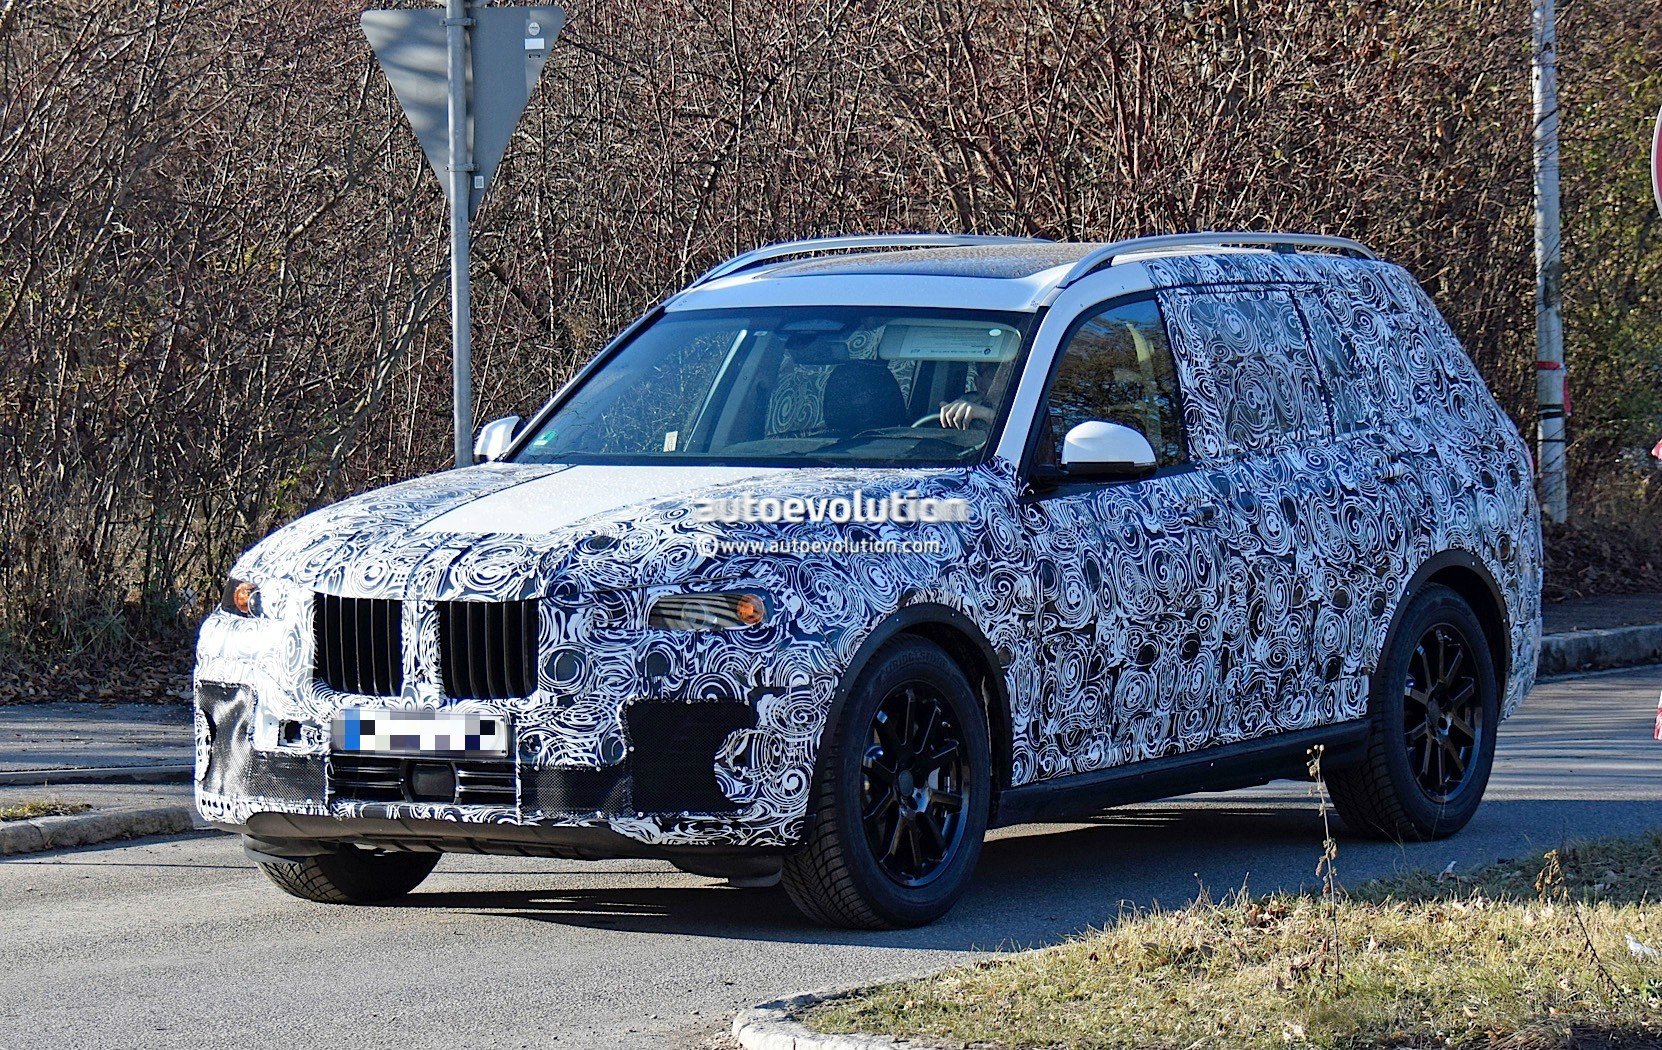 BMW Rumored To Unveil X7 Concept At 2017 Frankfurt Auto Show